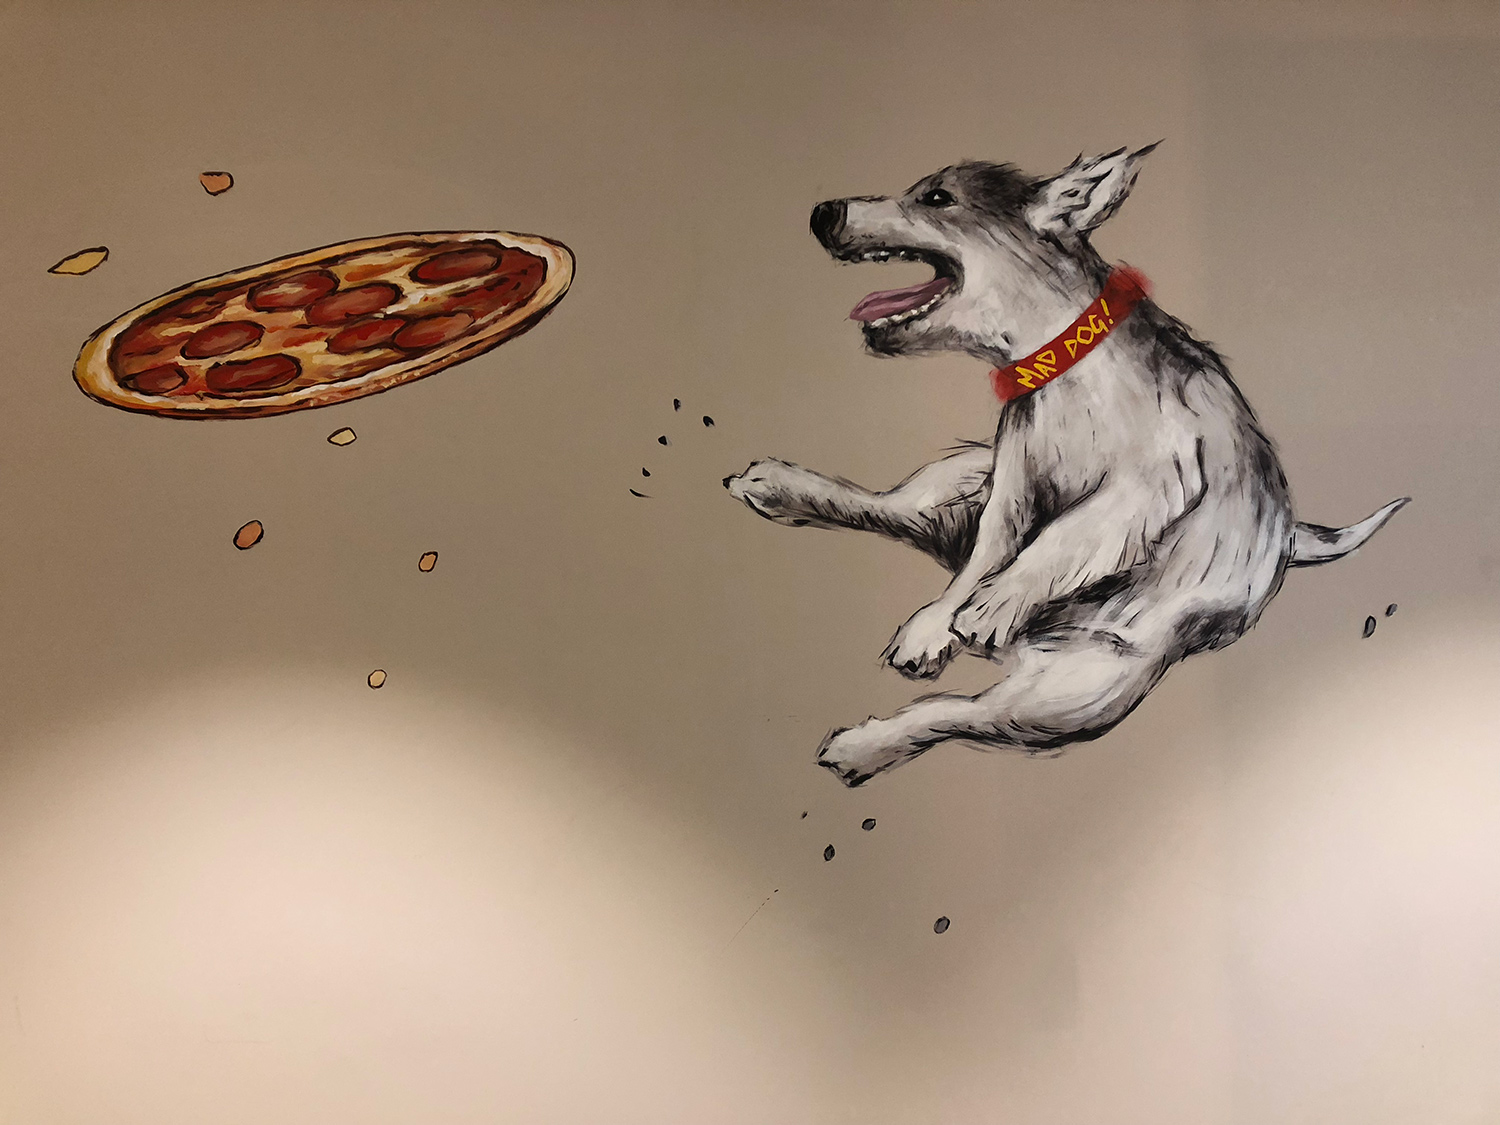 Mural of a dog jumping to catch a pizza on a white wall, in MOD Pizza, Leicester by SAINT Design.